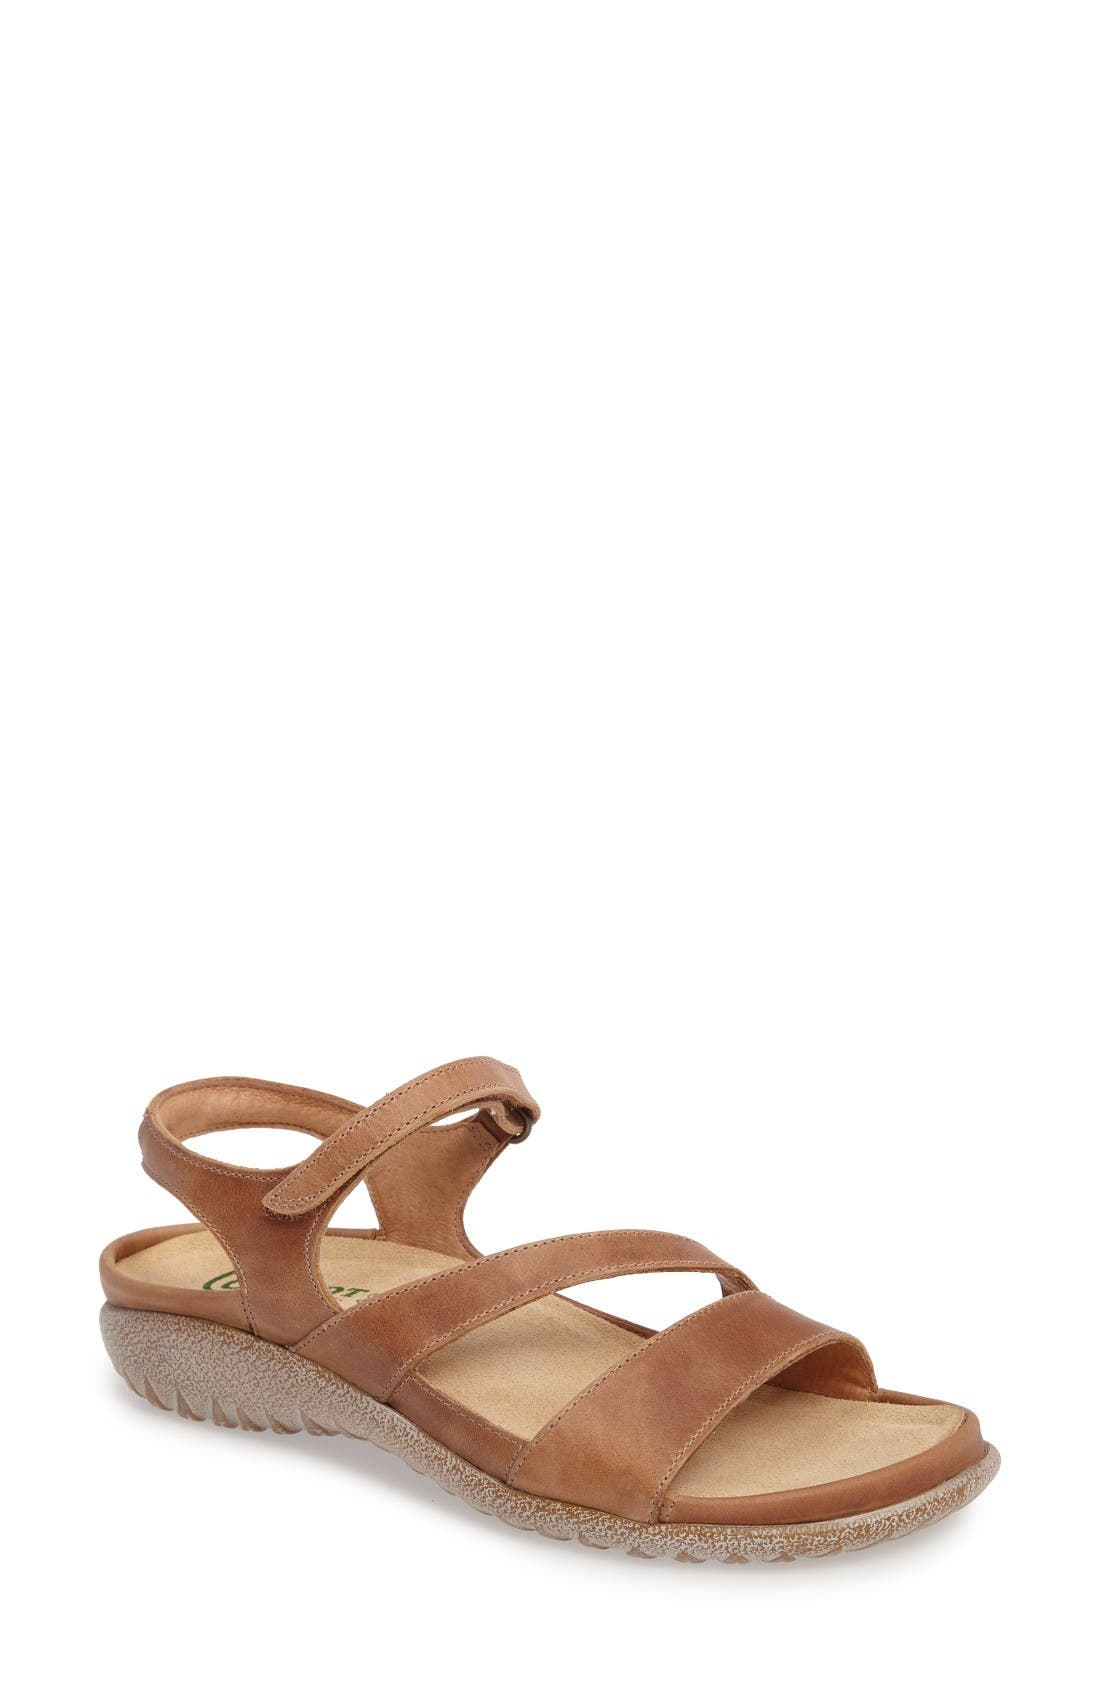 'Etera' Sandal,                         Main,                         color, Brown Leather